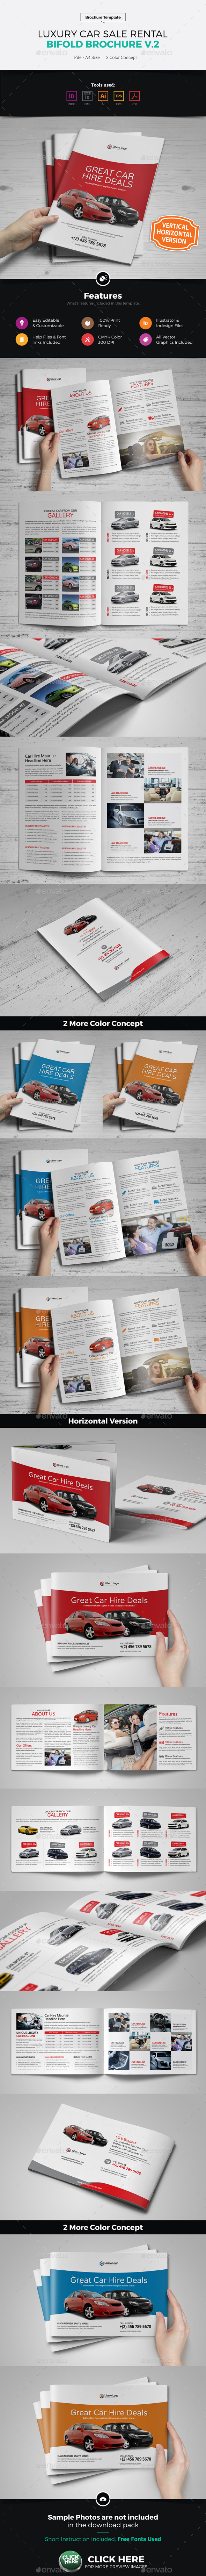 Luxury Car Sale Rental Brochure v2 - Corporate Brochures